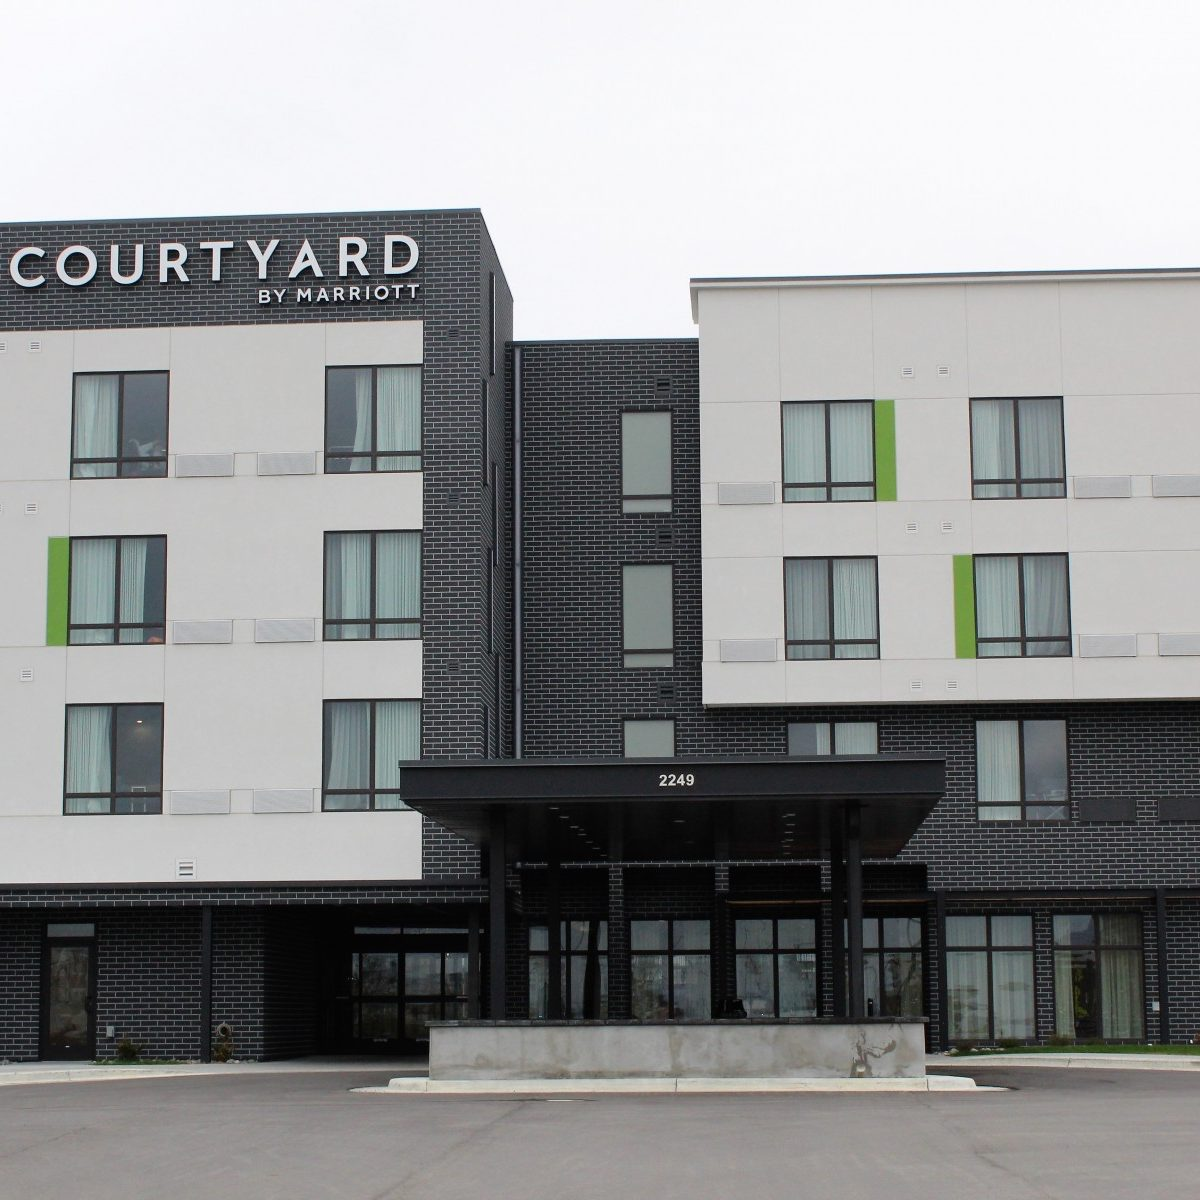 Courtyard by Mariott front lobby entrance with EIFS stucco by OTXteriors Fargo